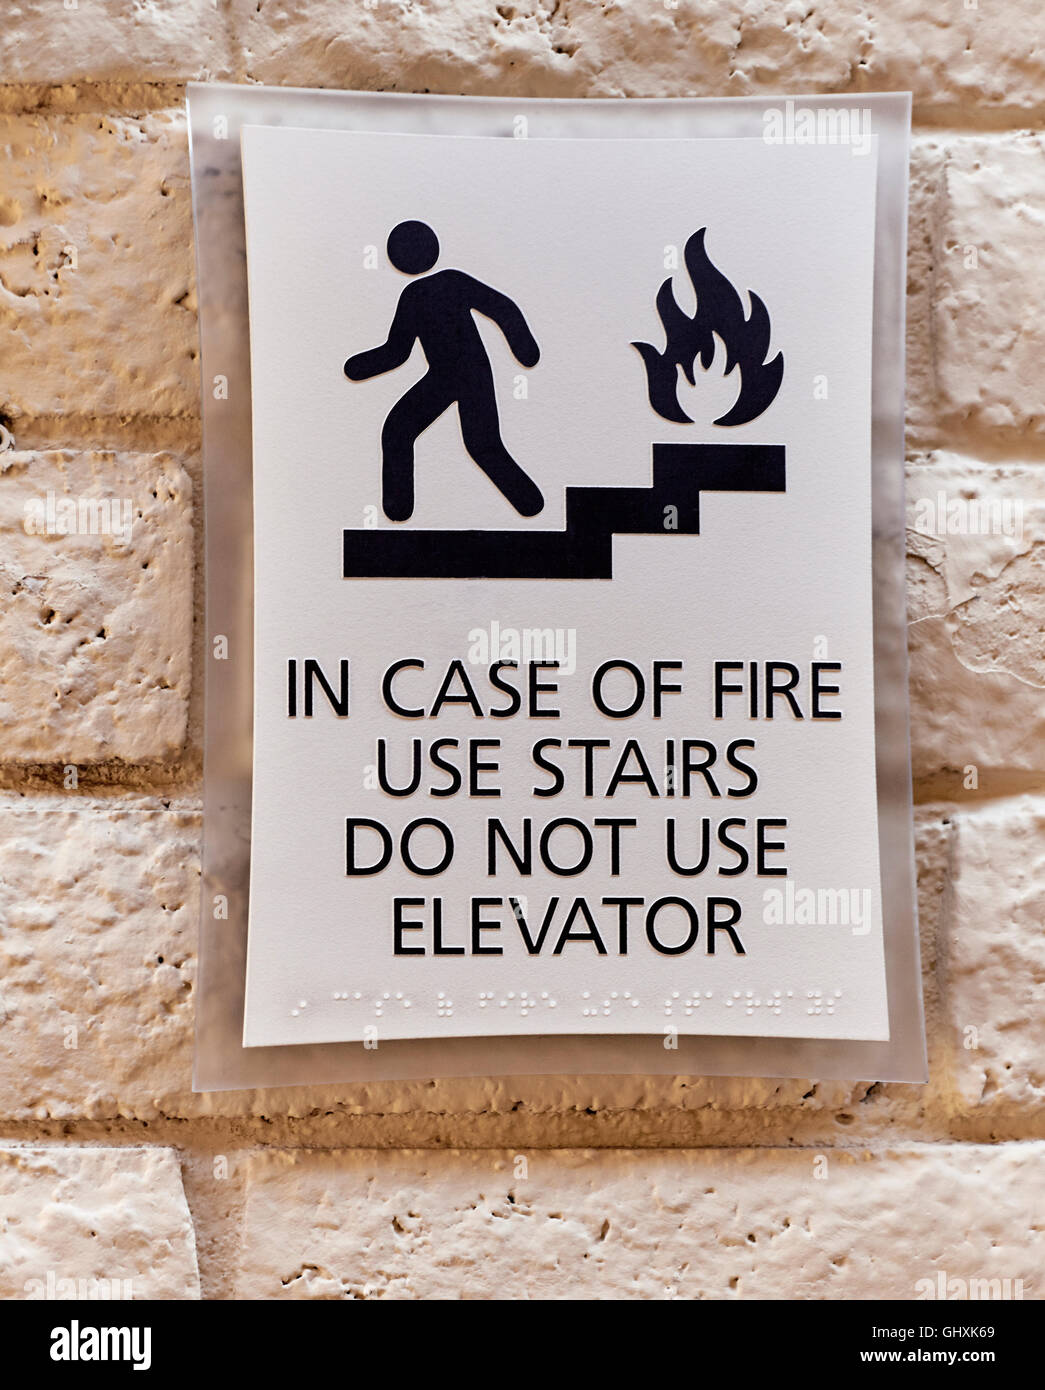 In Case Of Fire Use Stairs Do Not Use Elevator Warning